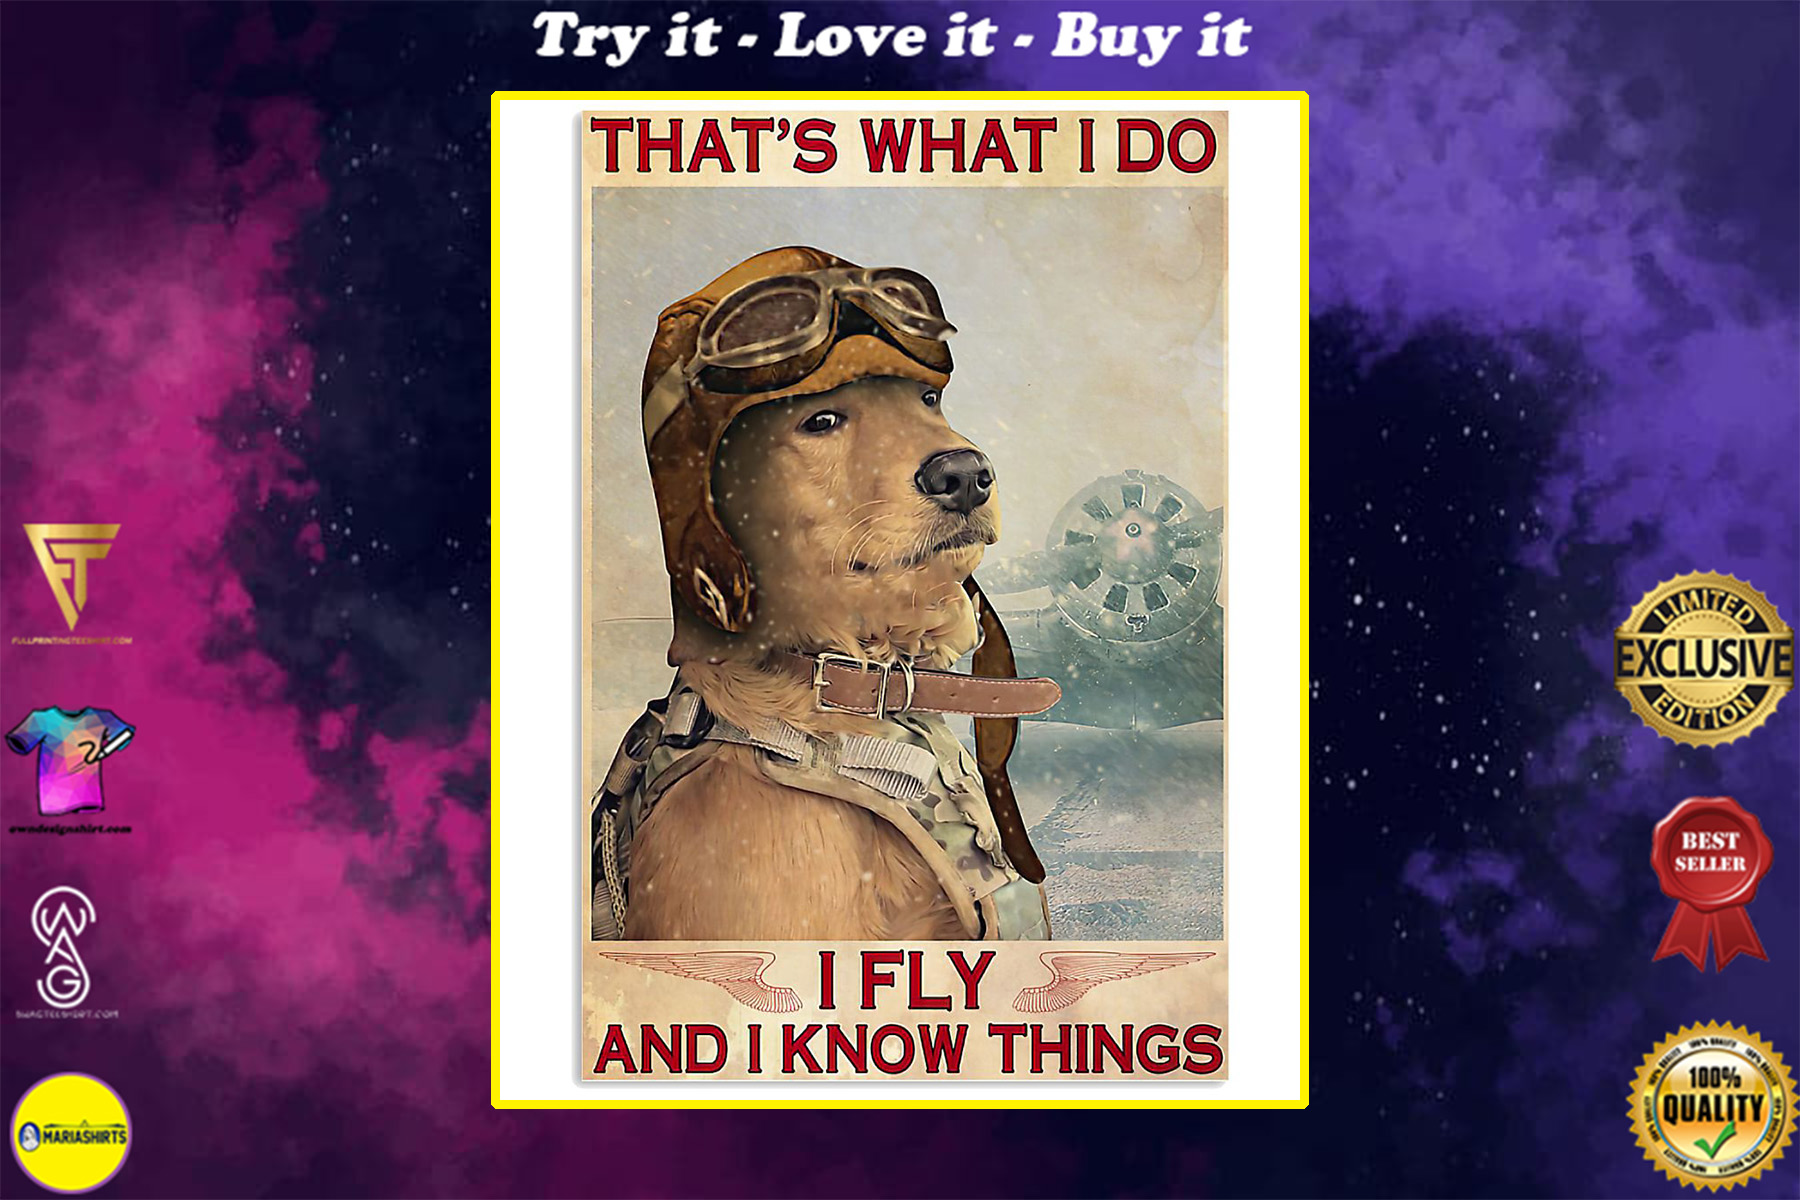 golden retriever thats what i do i fly and i know things retro poster